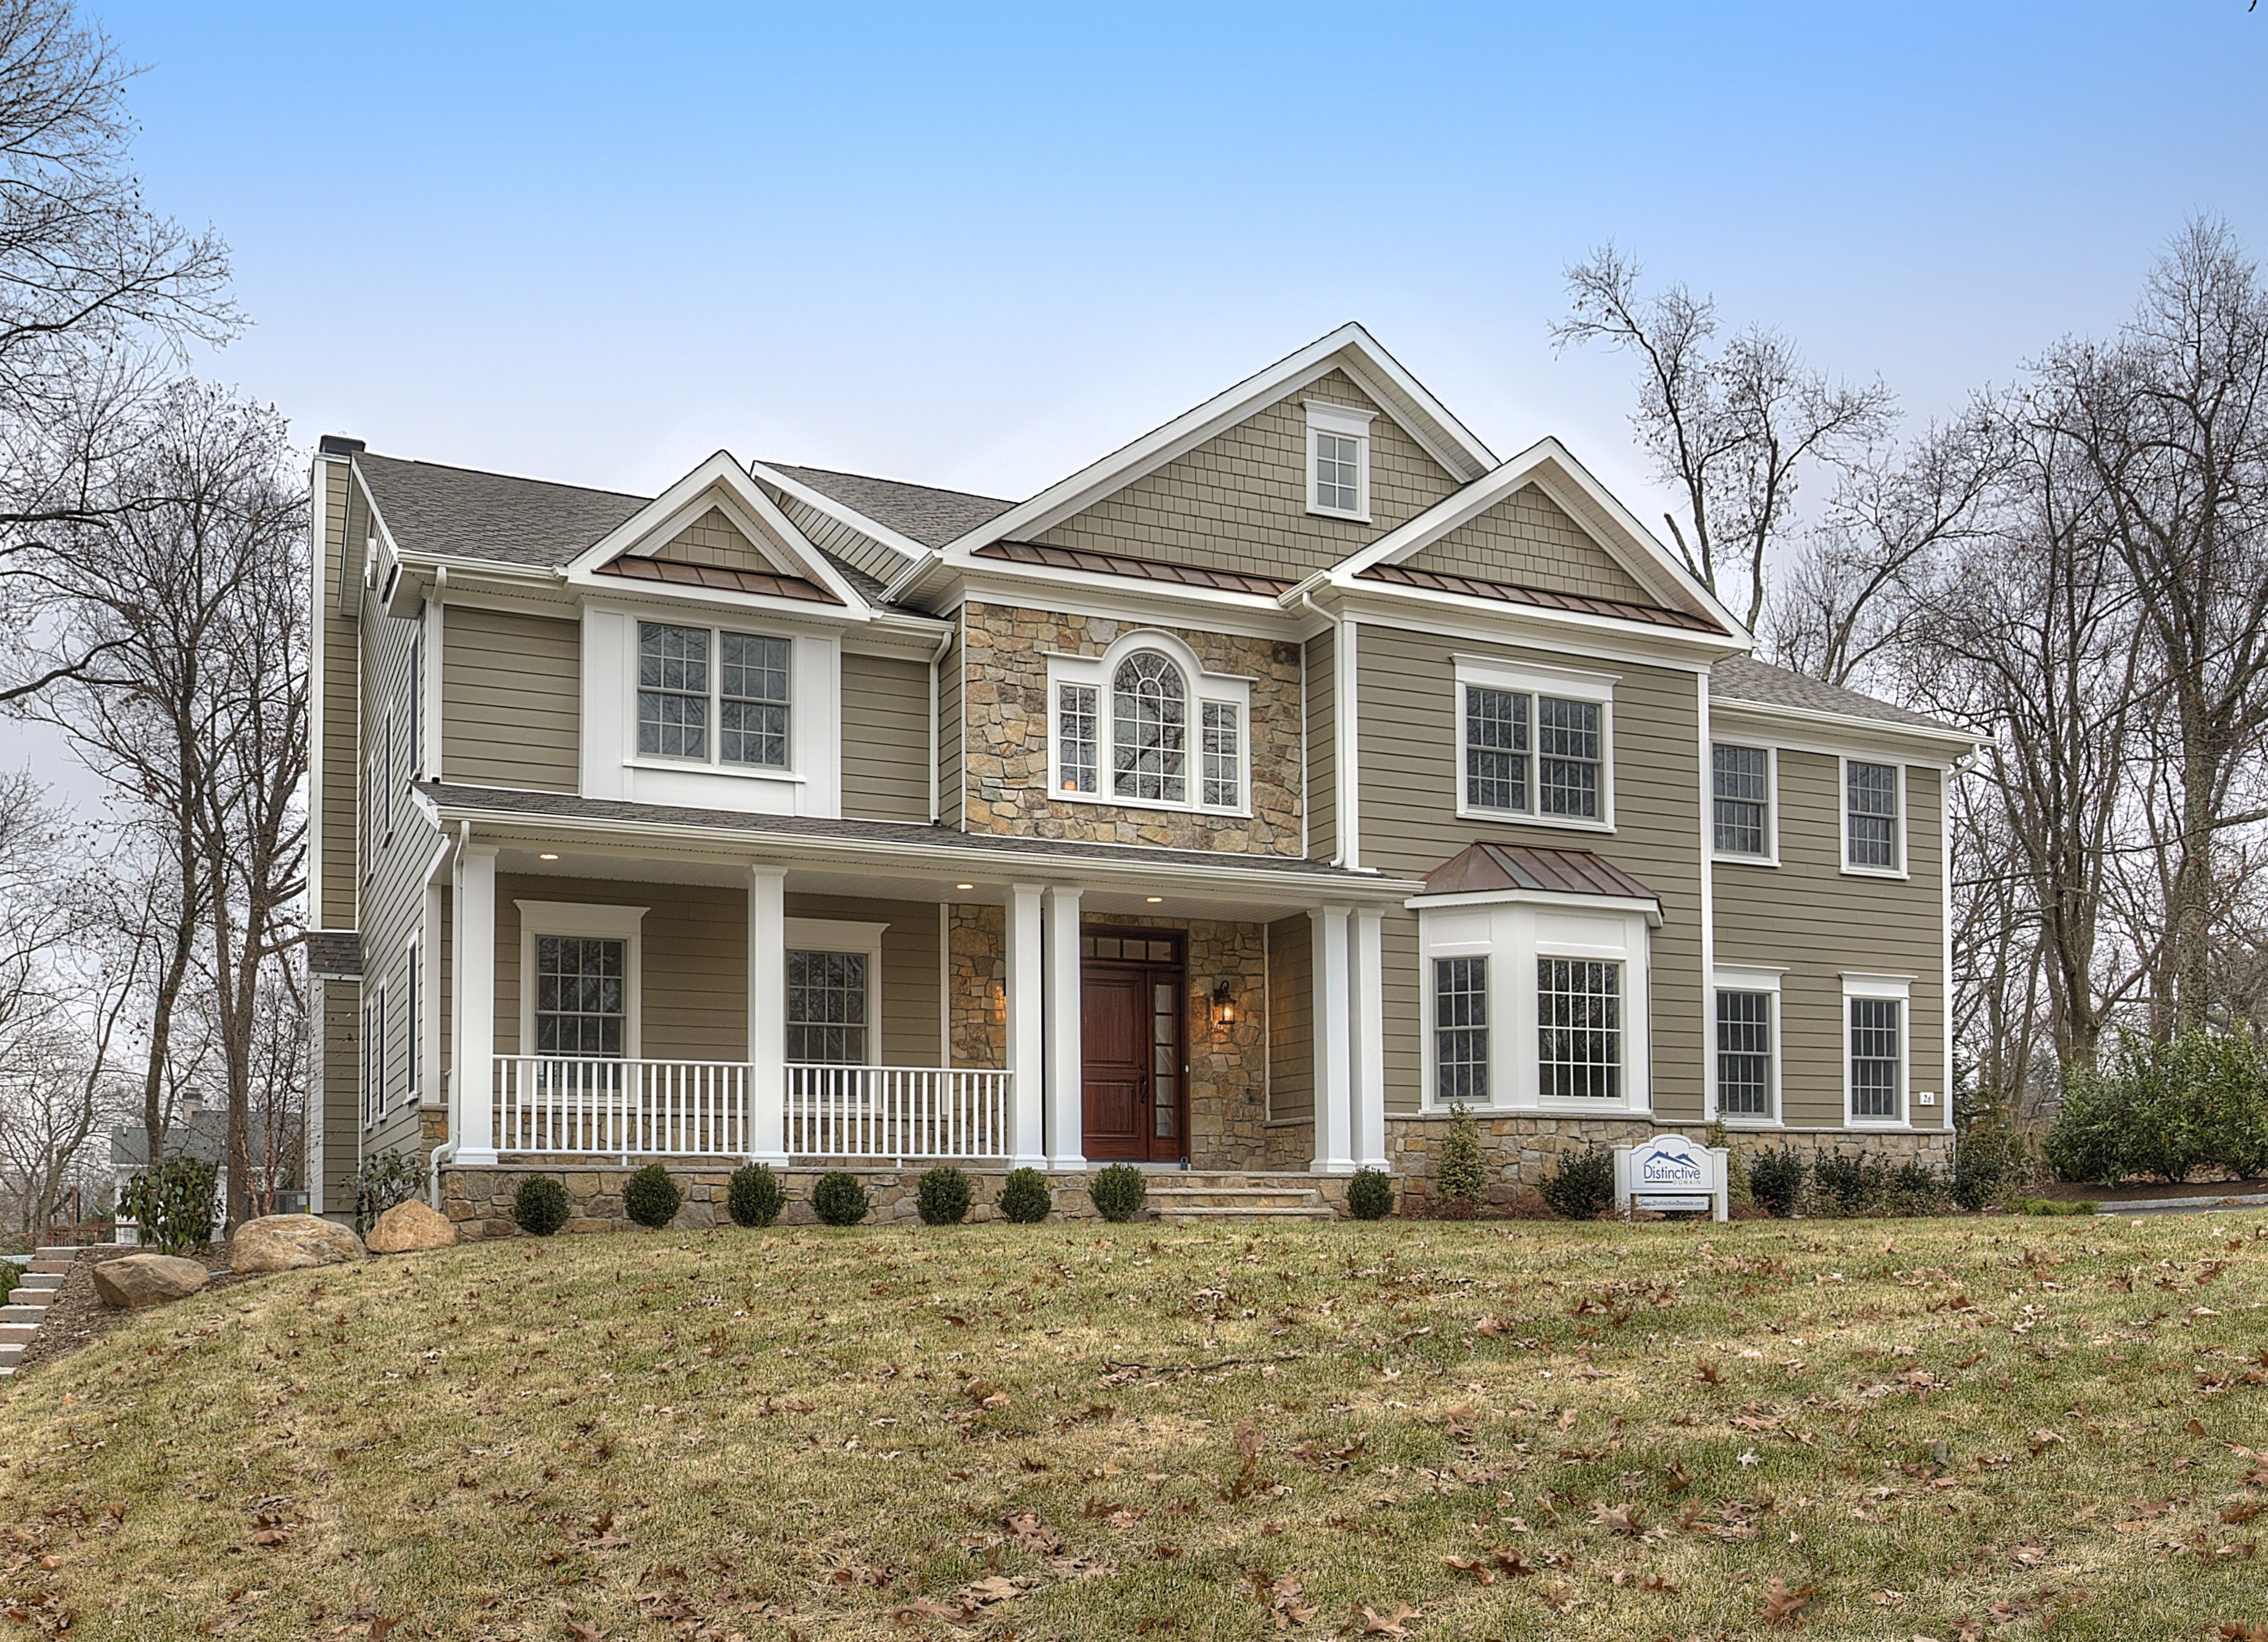 Custom Design Build Your New Home By The Renowned Builders In The Warren Township Nj Area Pick Your Lot And Choose Your Floor New Homes Building Design Home